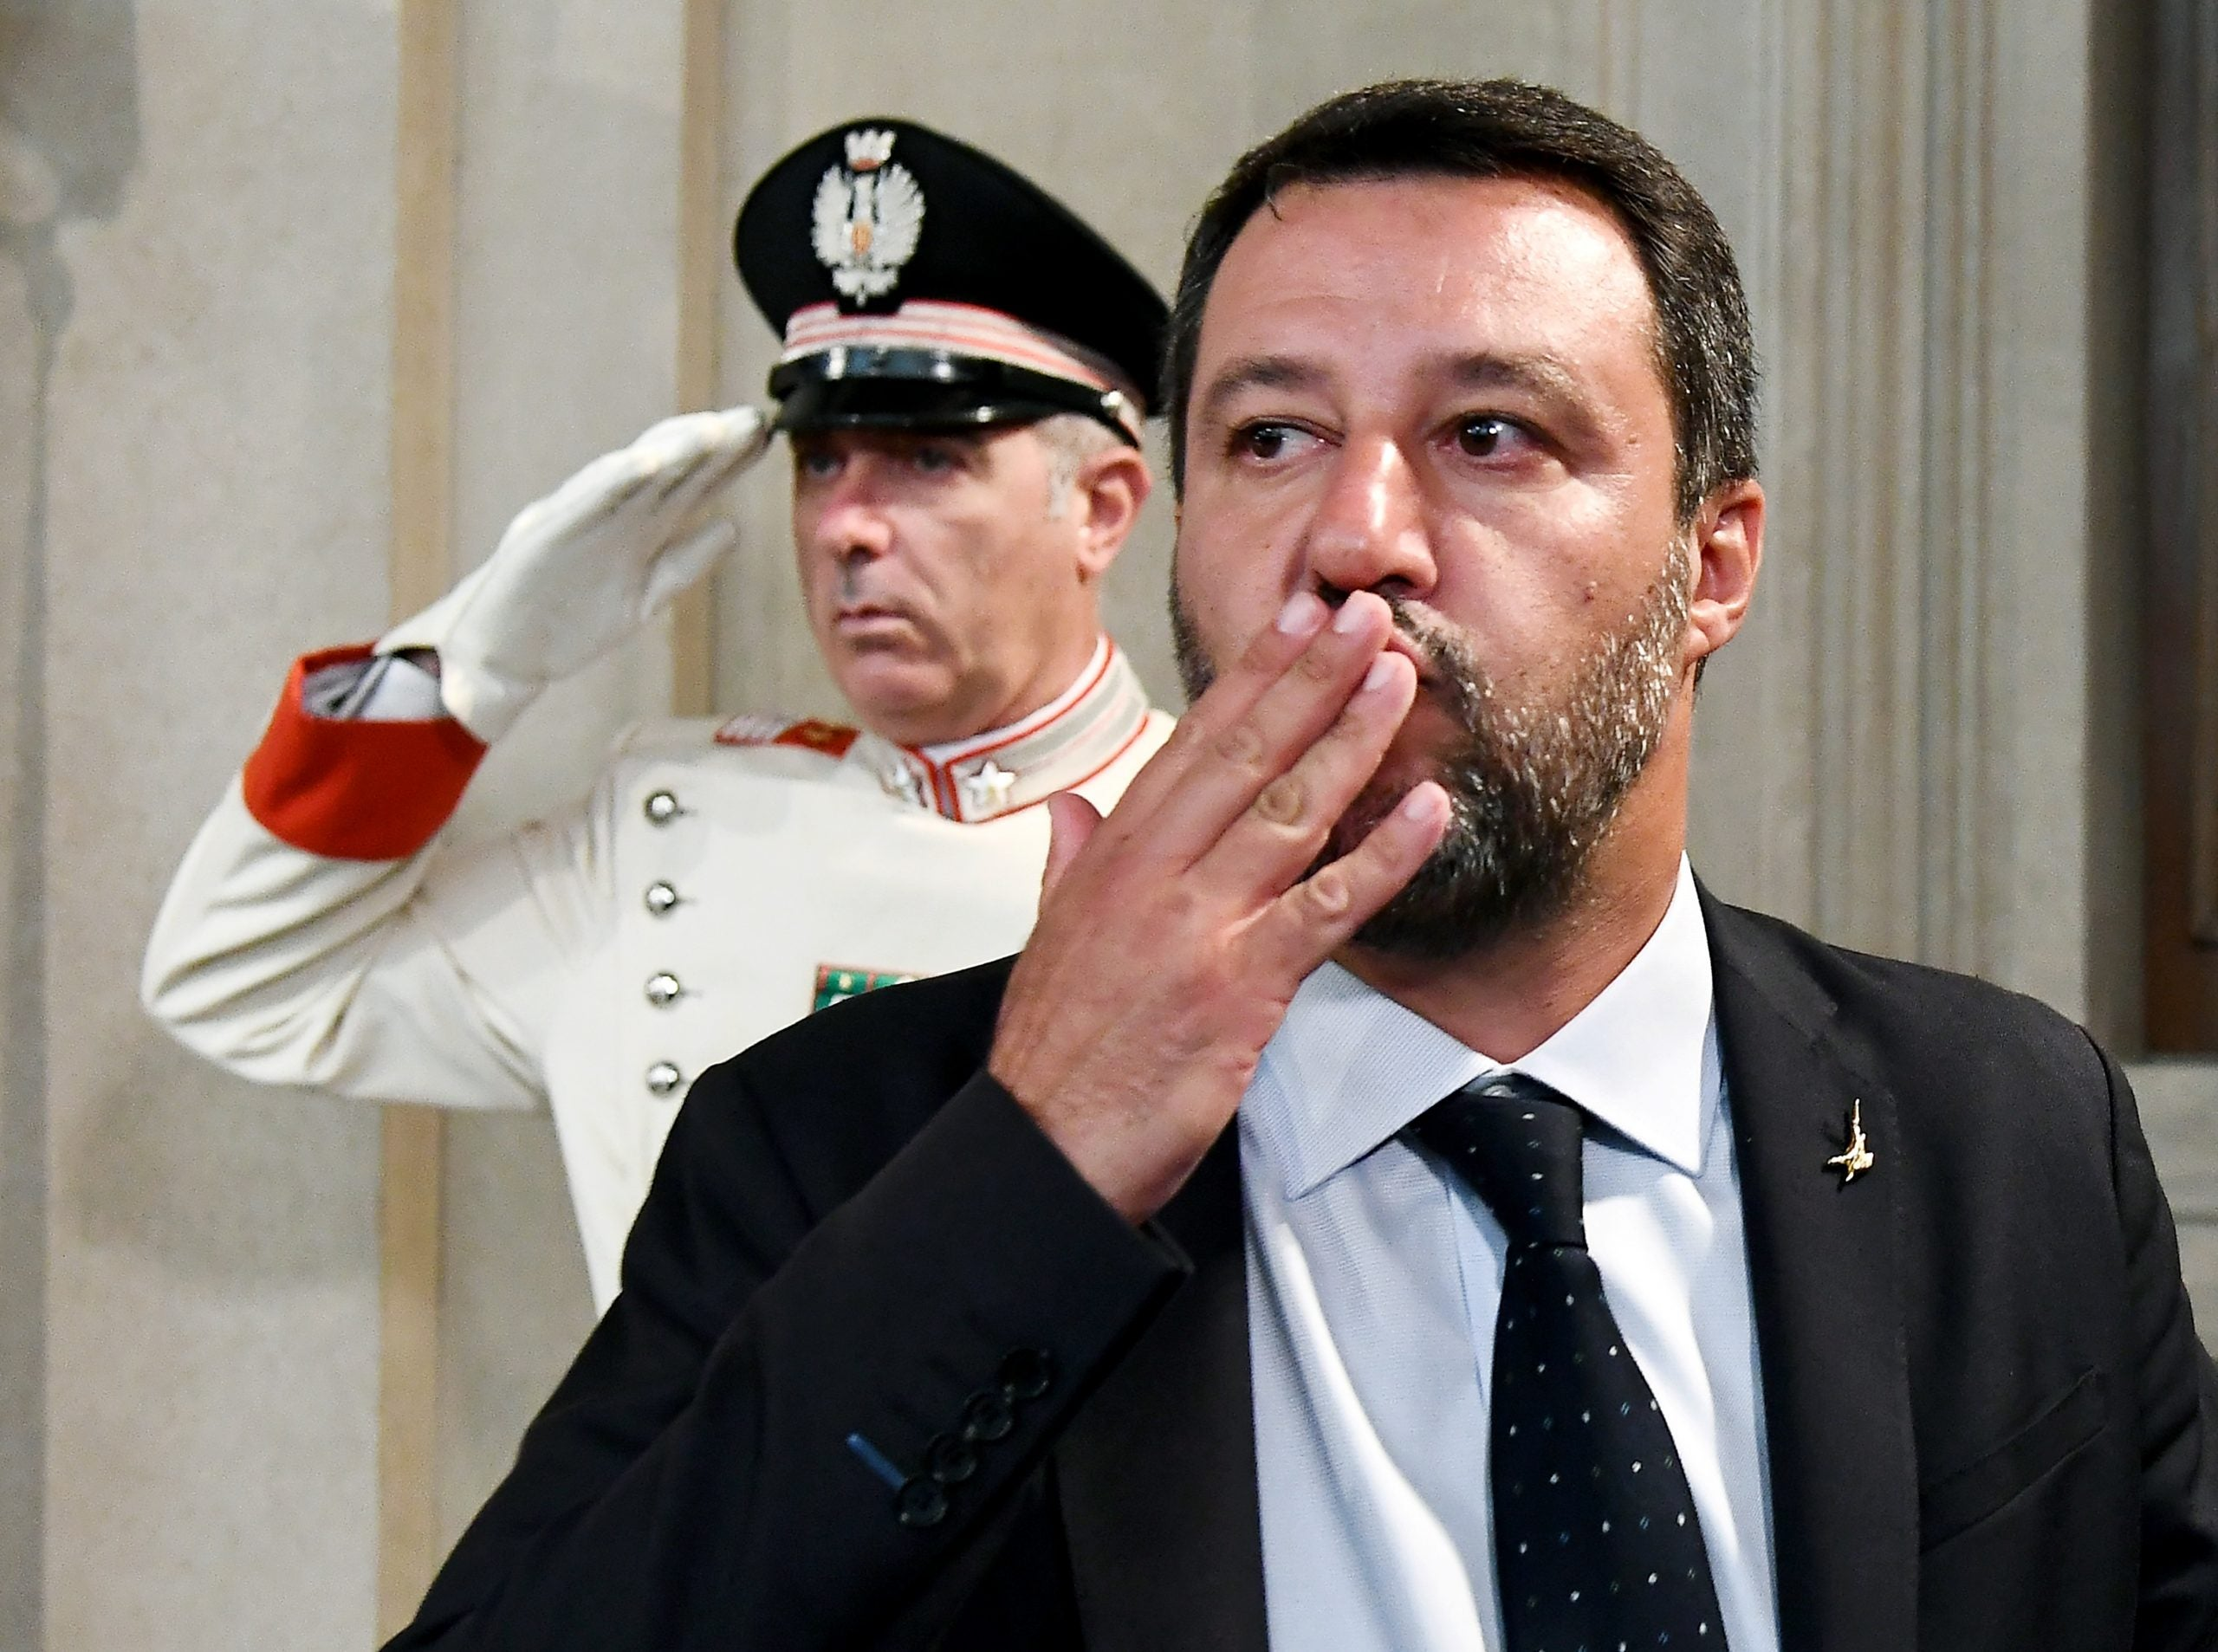 Italy's new centrist government isn't the end of Matteo Salvini's dreams of power